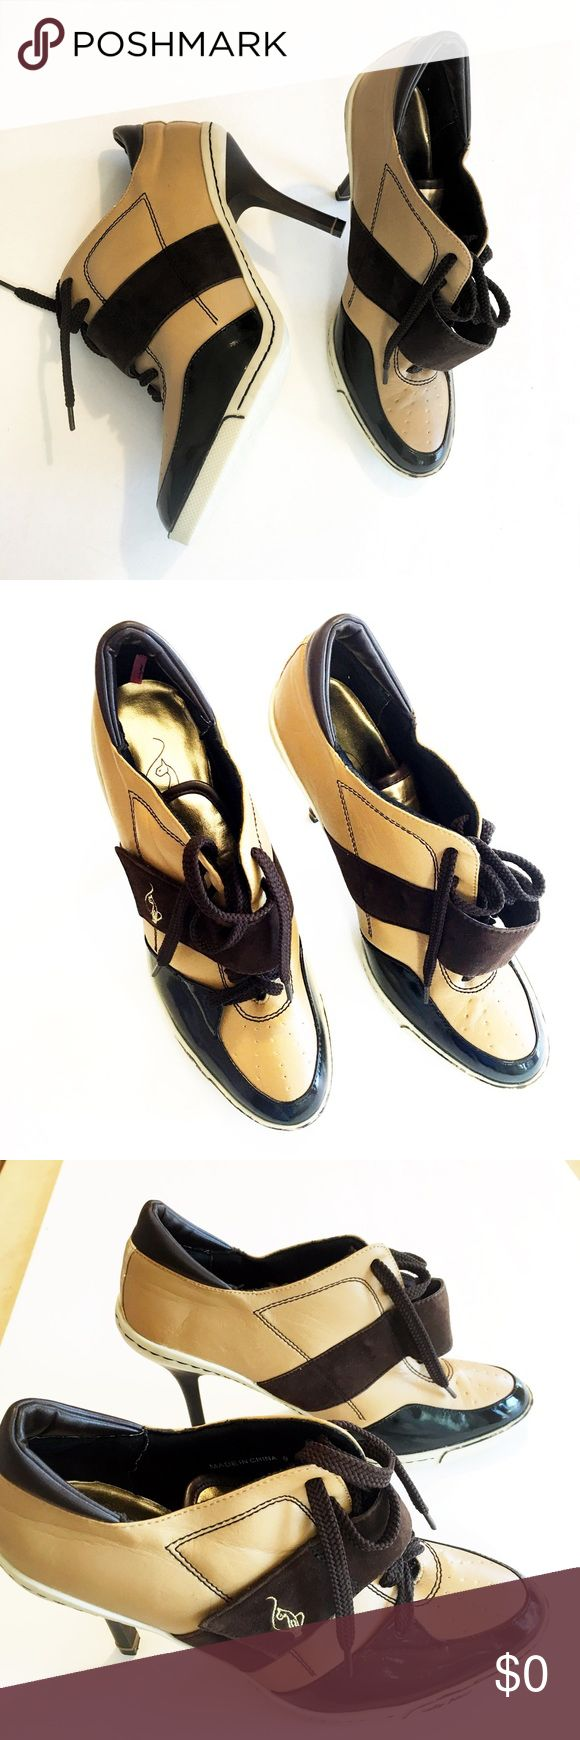 Baby Phat gold tennis shoe pumps Sz. 9 Baby Phat gold, brown and tan Velcro and tie tennis shoe heel pumps. Ankle boots / booties. OMG!! For real?! A must if you love Baby Phat! Baby Phat Shoes Ankle Boots & Booties